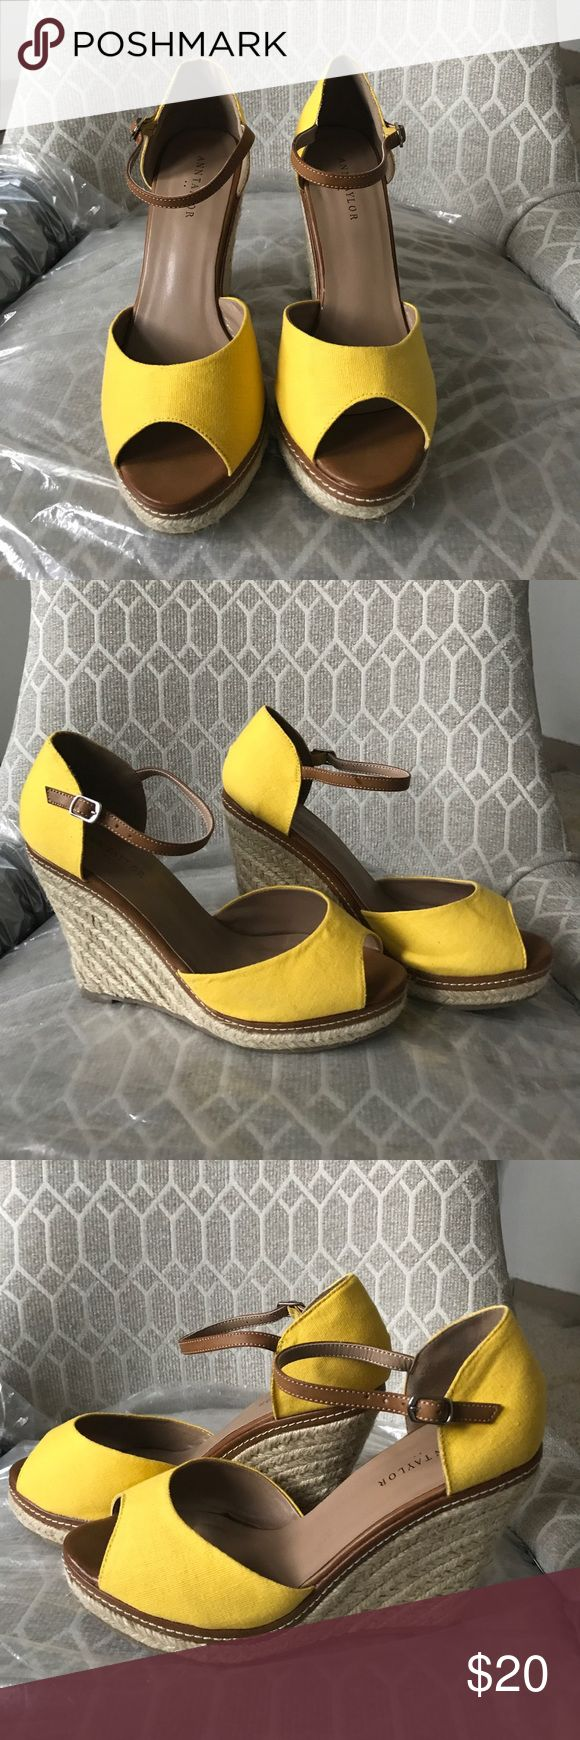 Beautiful Ann Taylor yellow wedge sandals Brand new in box! Yellow Anne Taylor size 8 Canvas wedge espadrille wedge. Never worn. Ann Taylor Shoes Sandals